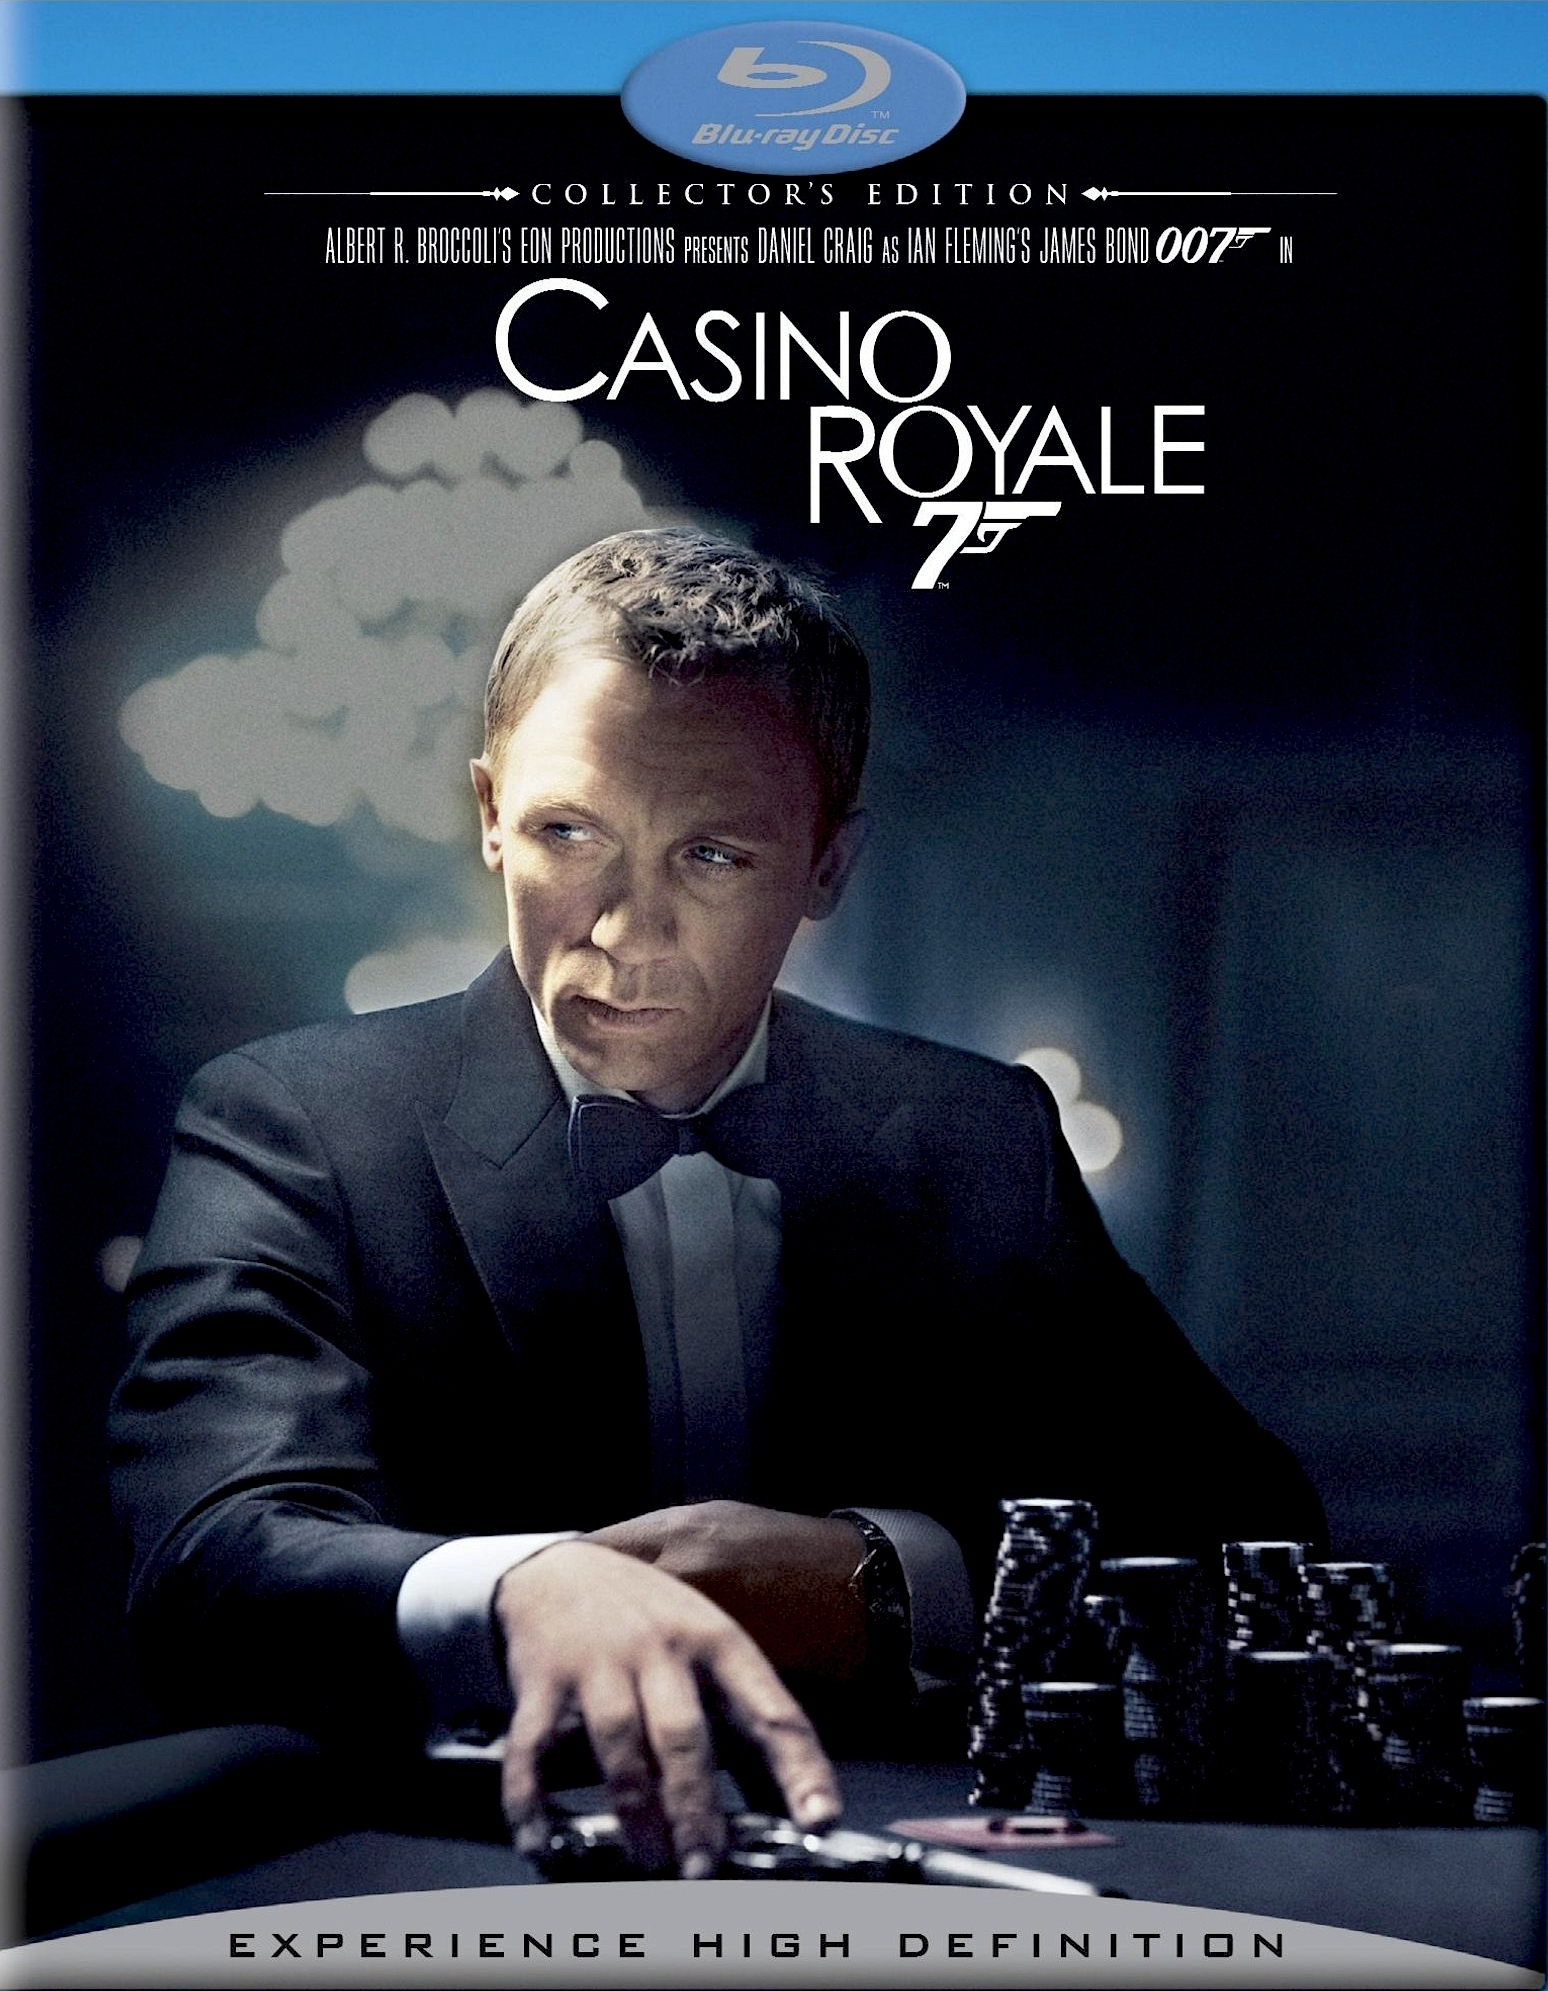 James bond casino royale full movie download live poker players